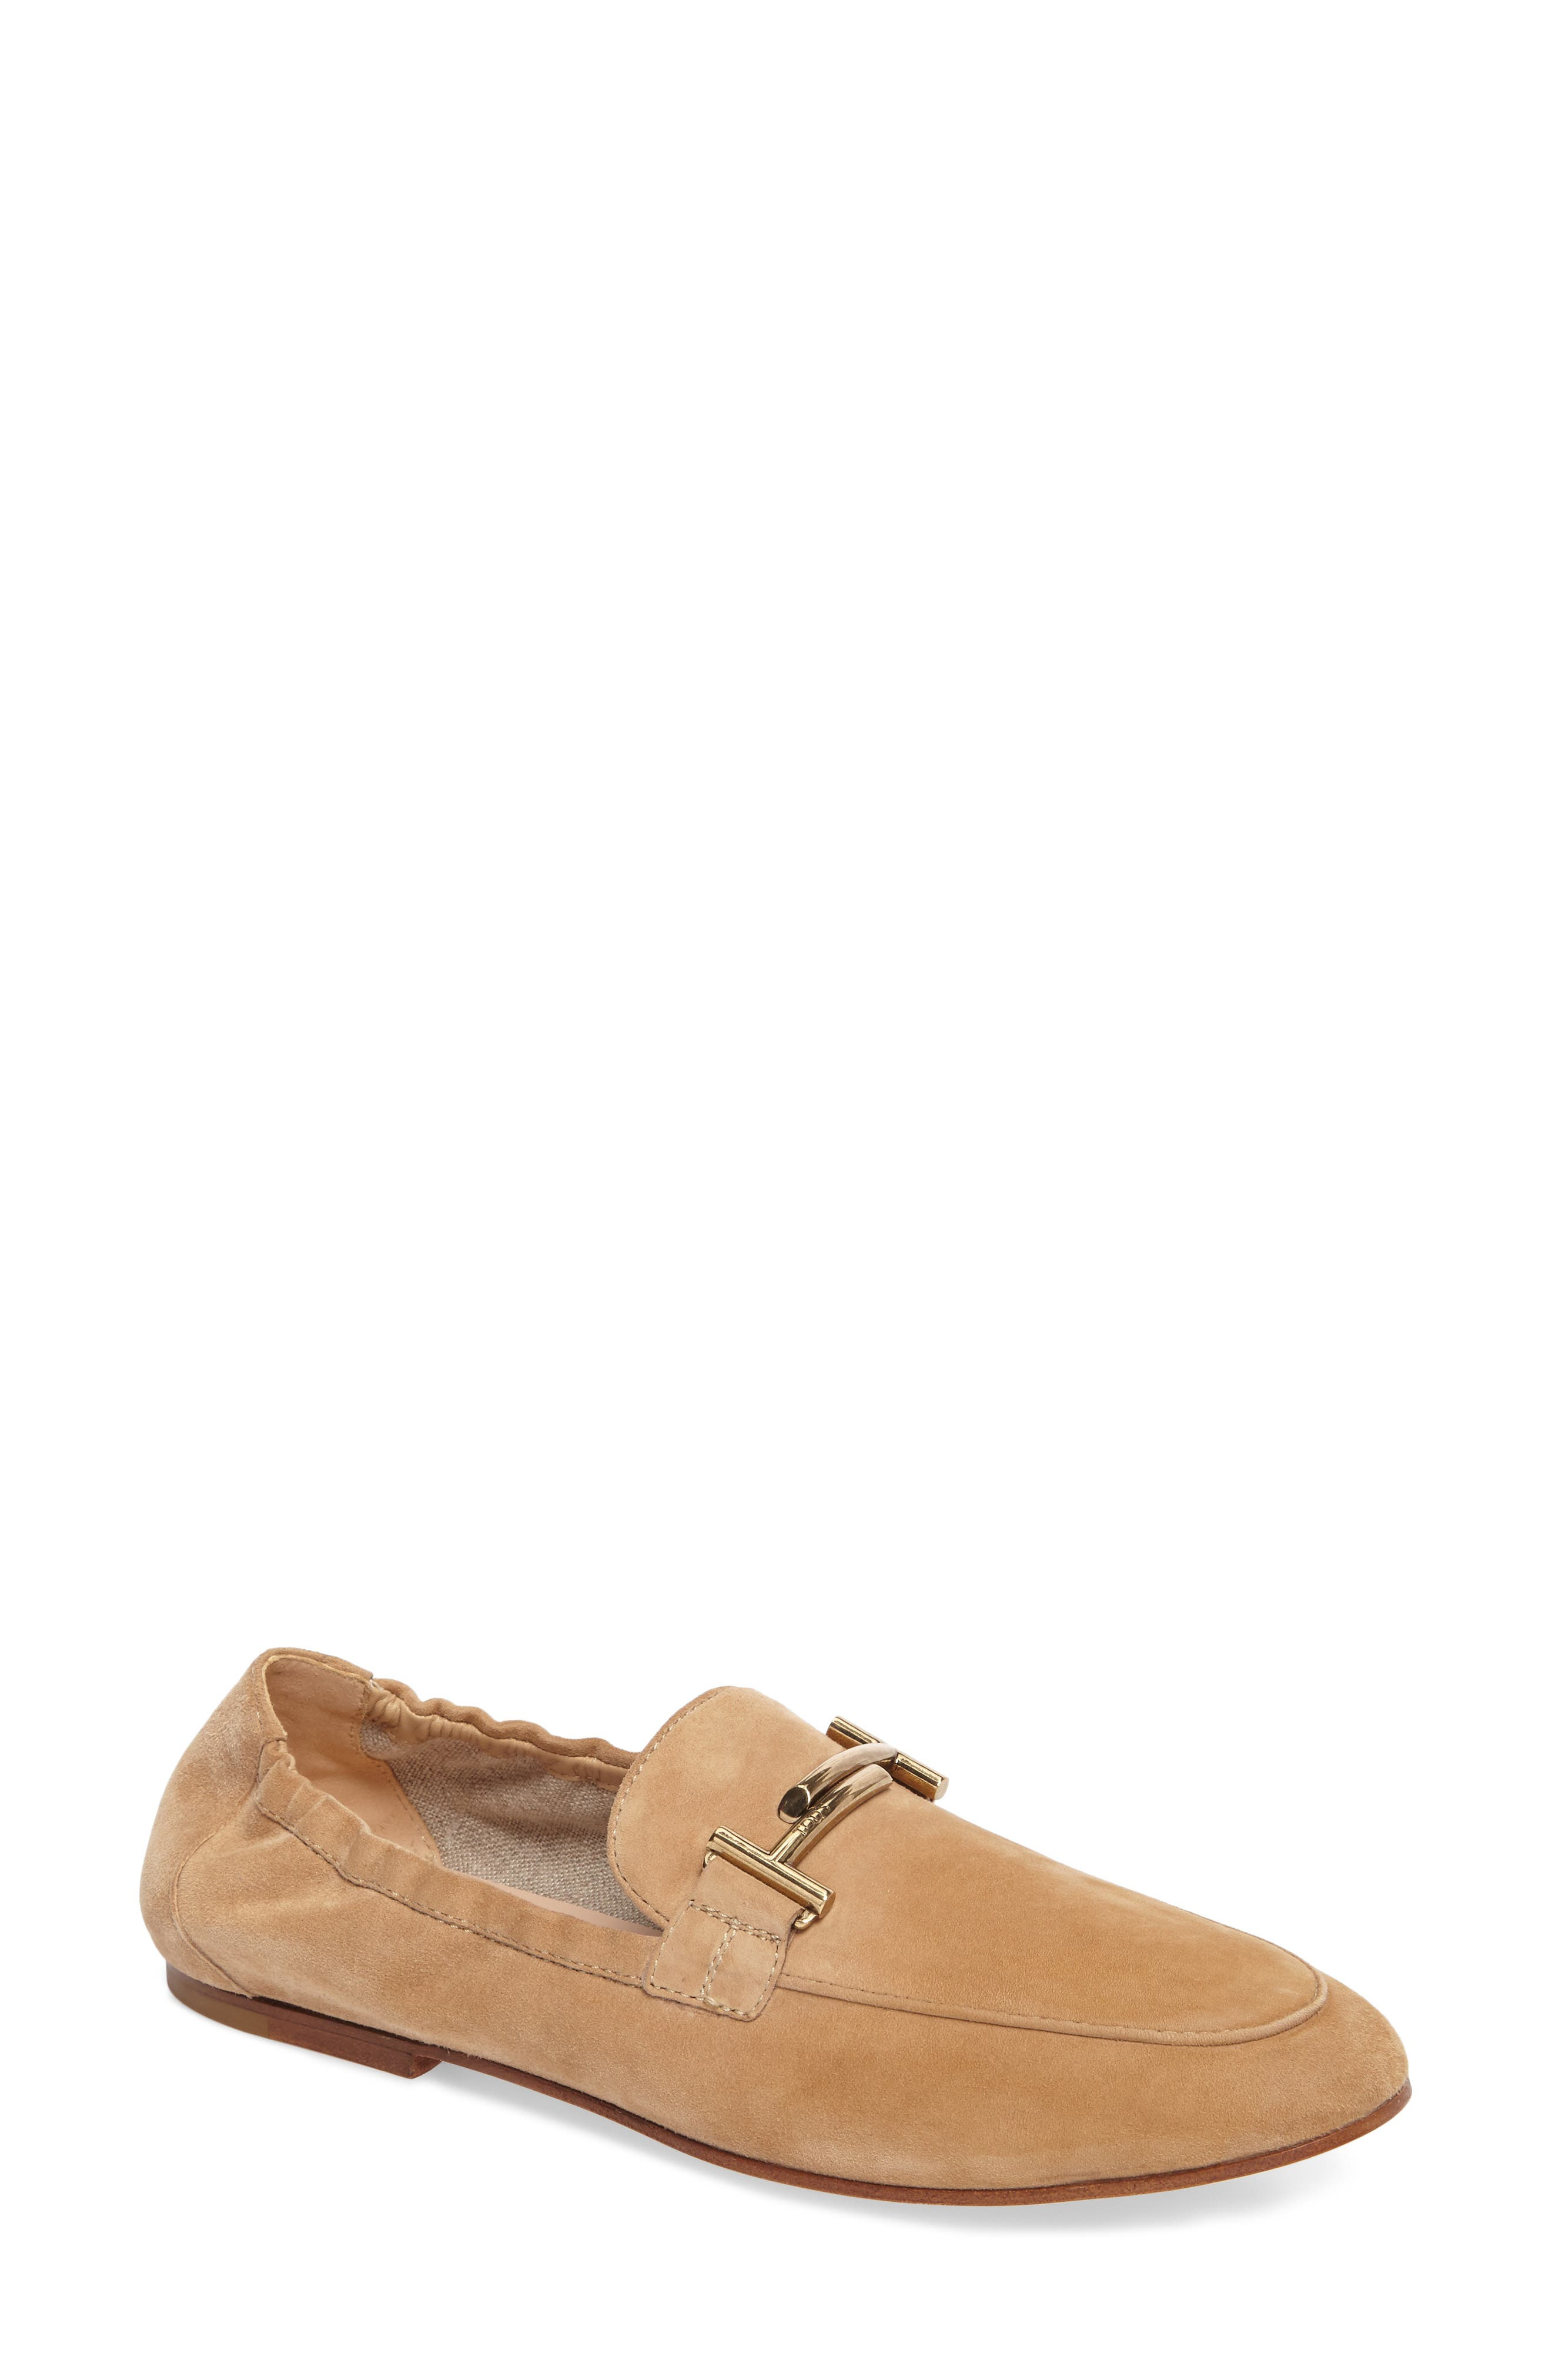 Main Image - Tod's Double T Scrunch Loafer (Women)